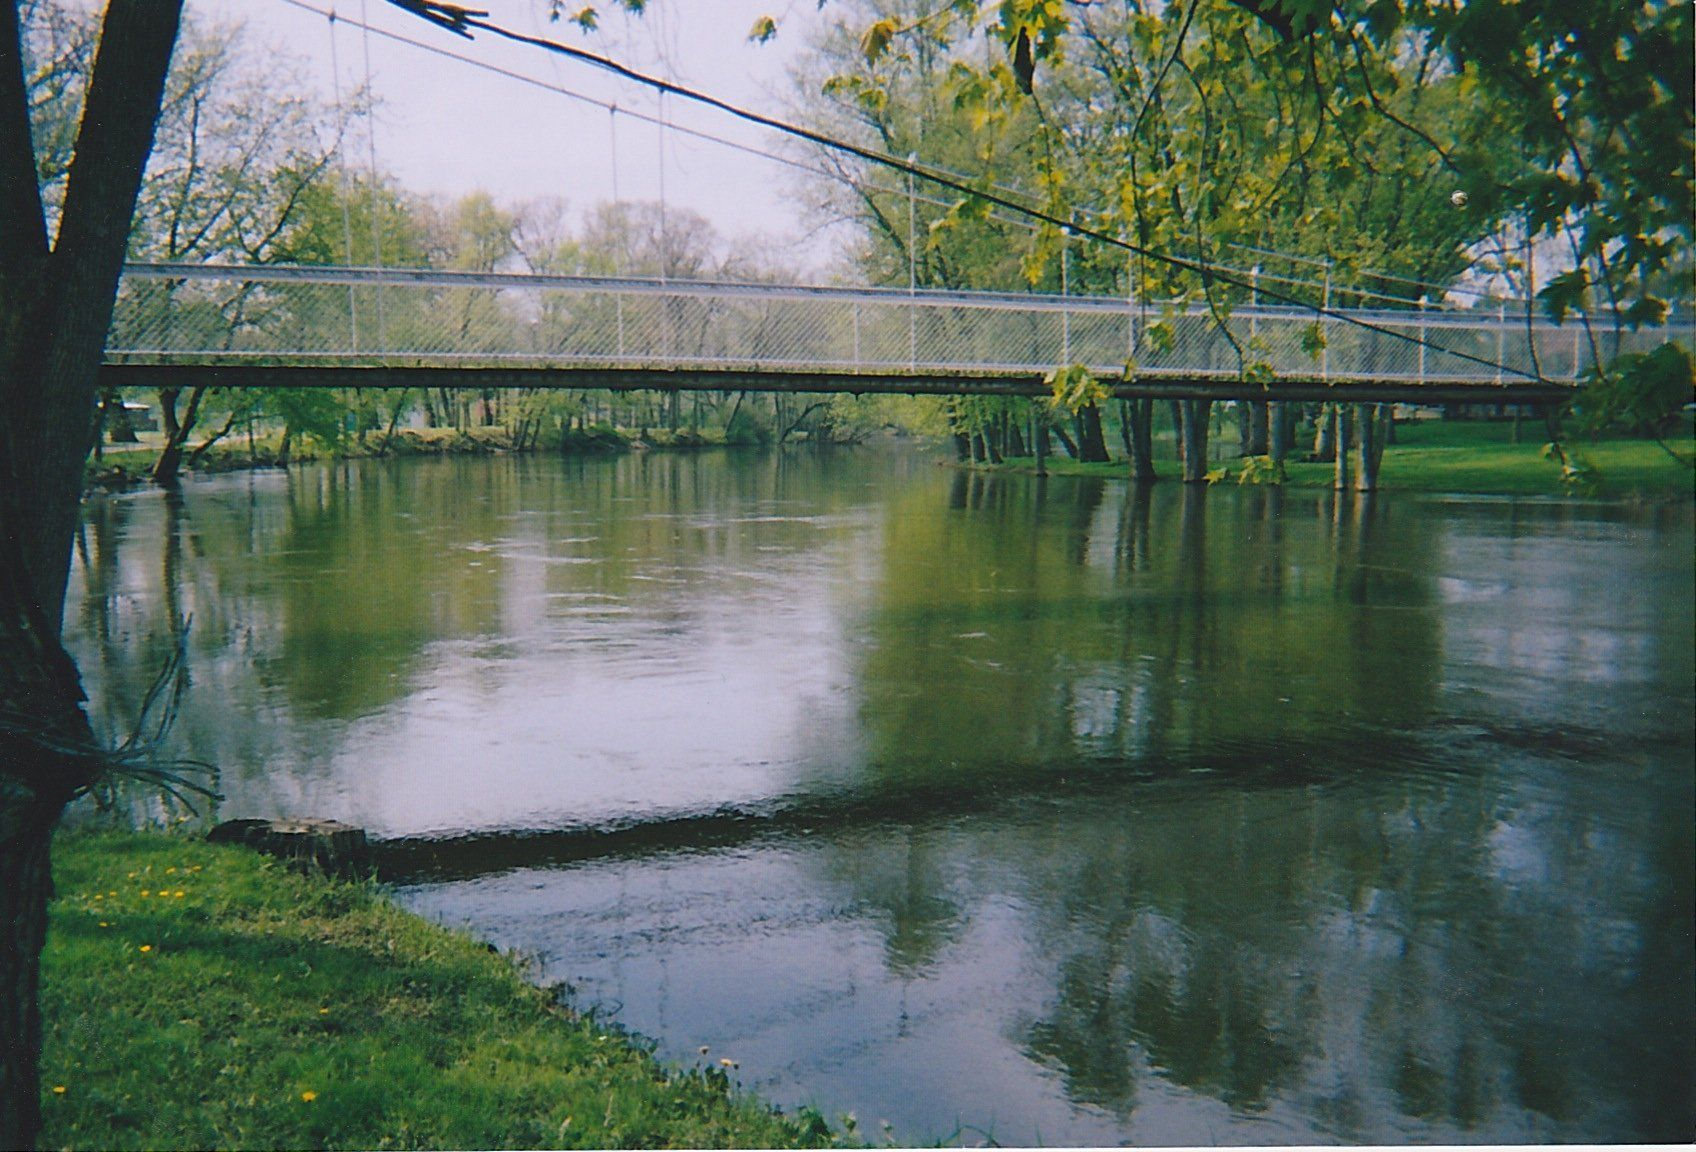 Jungle M. reccomend Swinging bridge winamac